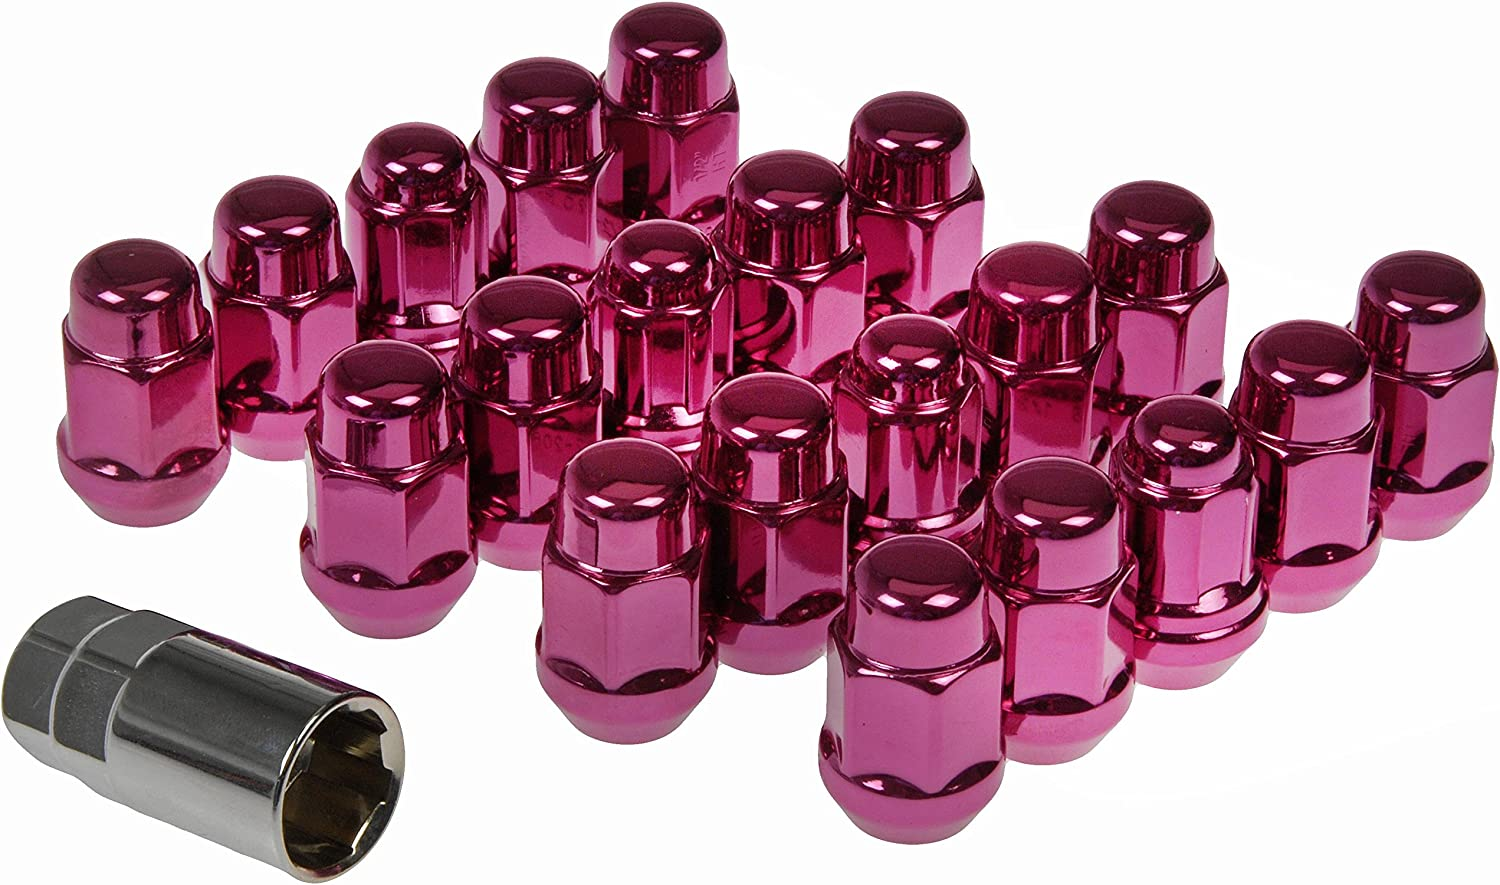 Dorman 711-235L Pack of 16 Pink Wheel Nuts and 4 Lock Nuts with Key